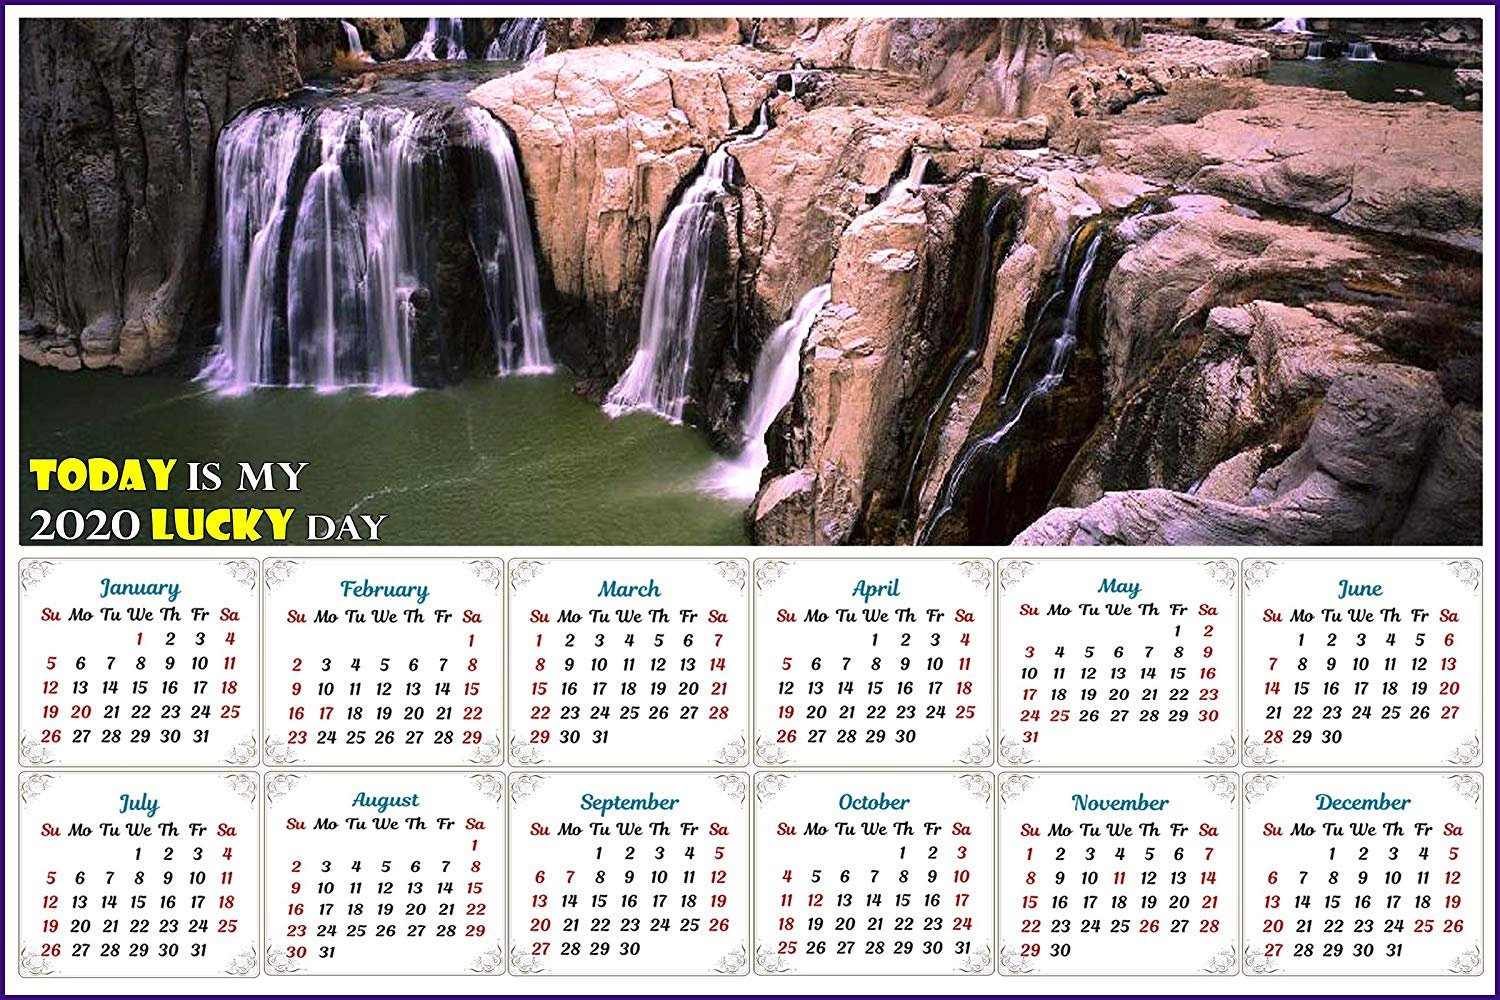 2020 Magnetic Calendar - Calendar Magnets - Today is my Lucky Day - v9